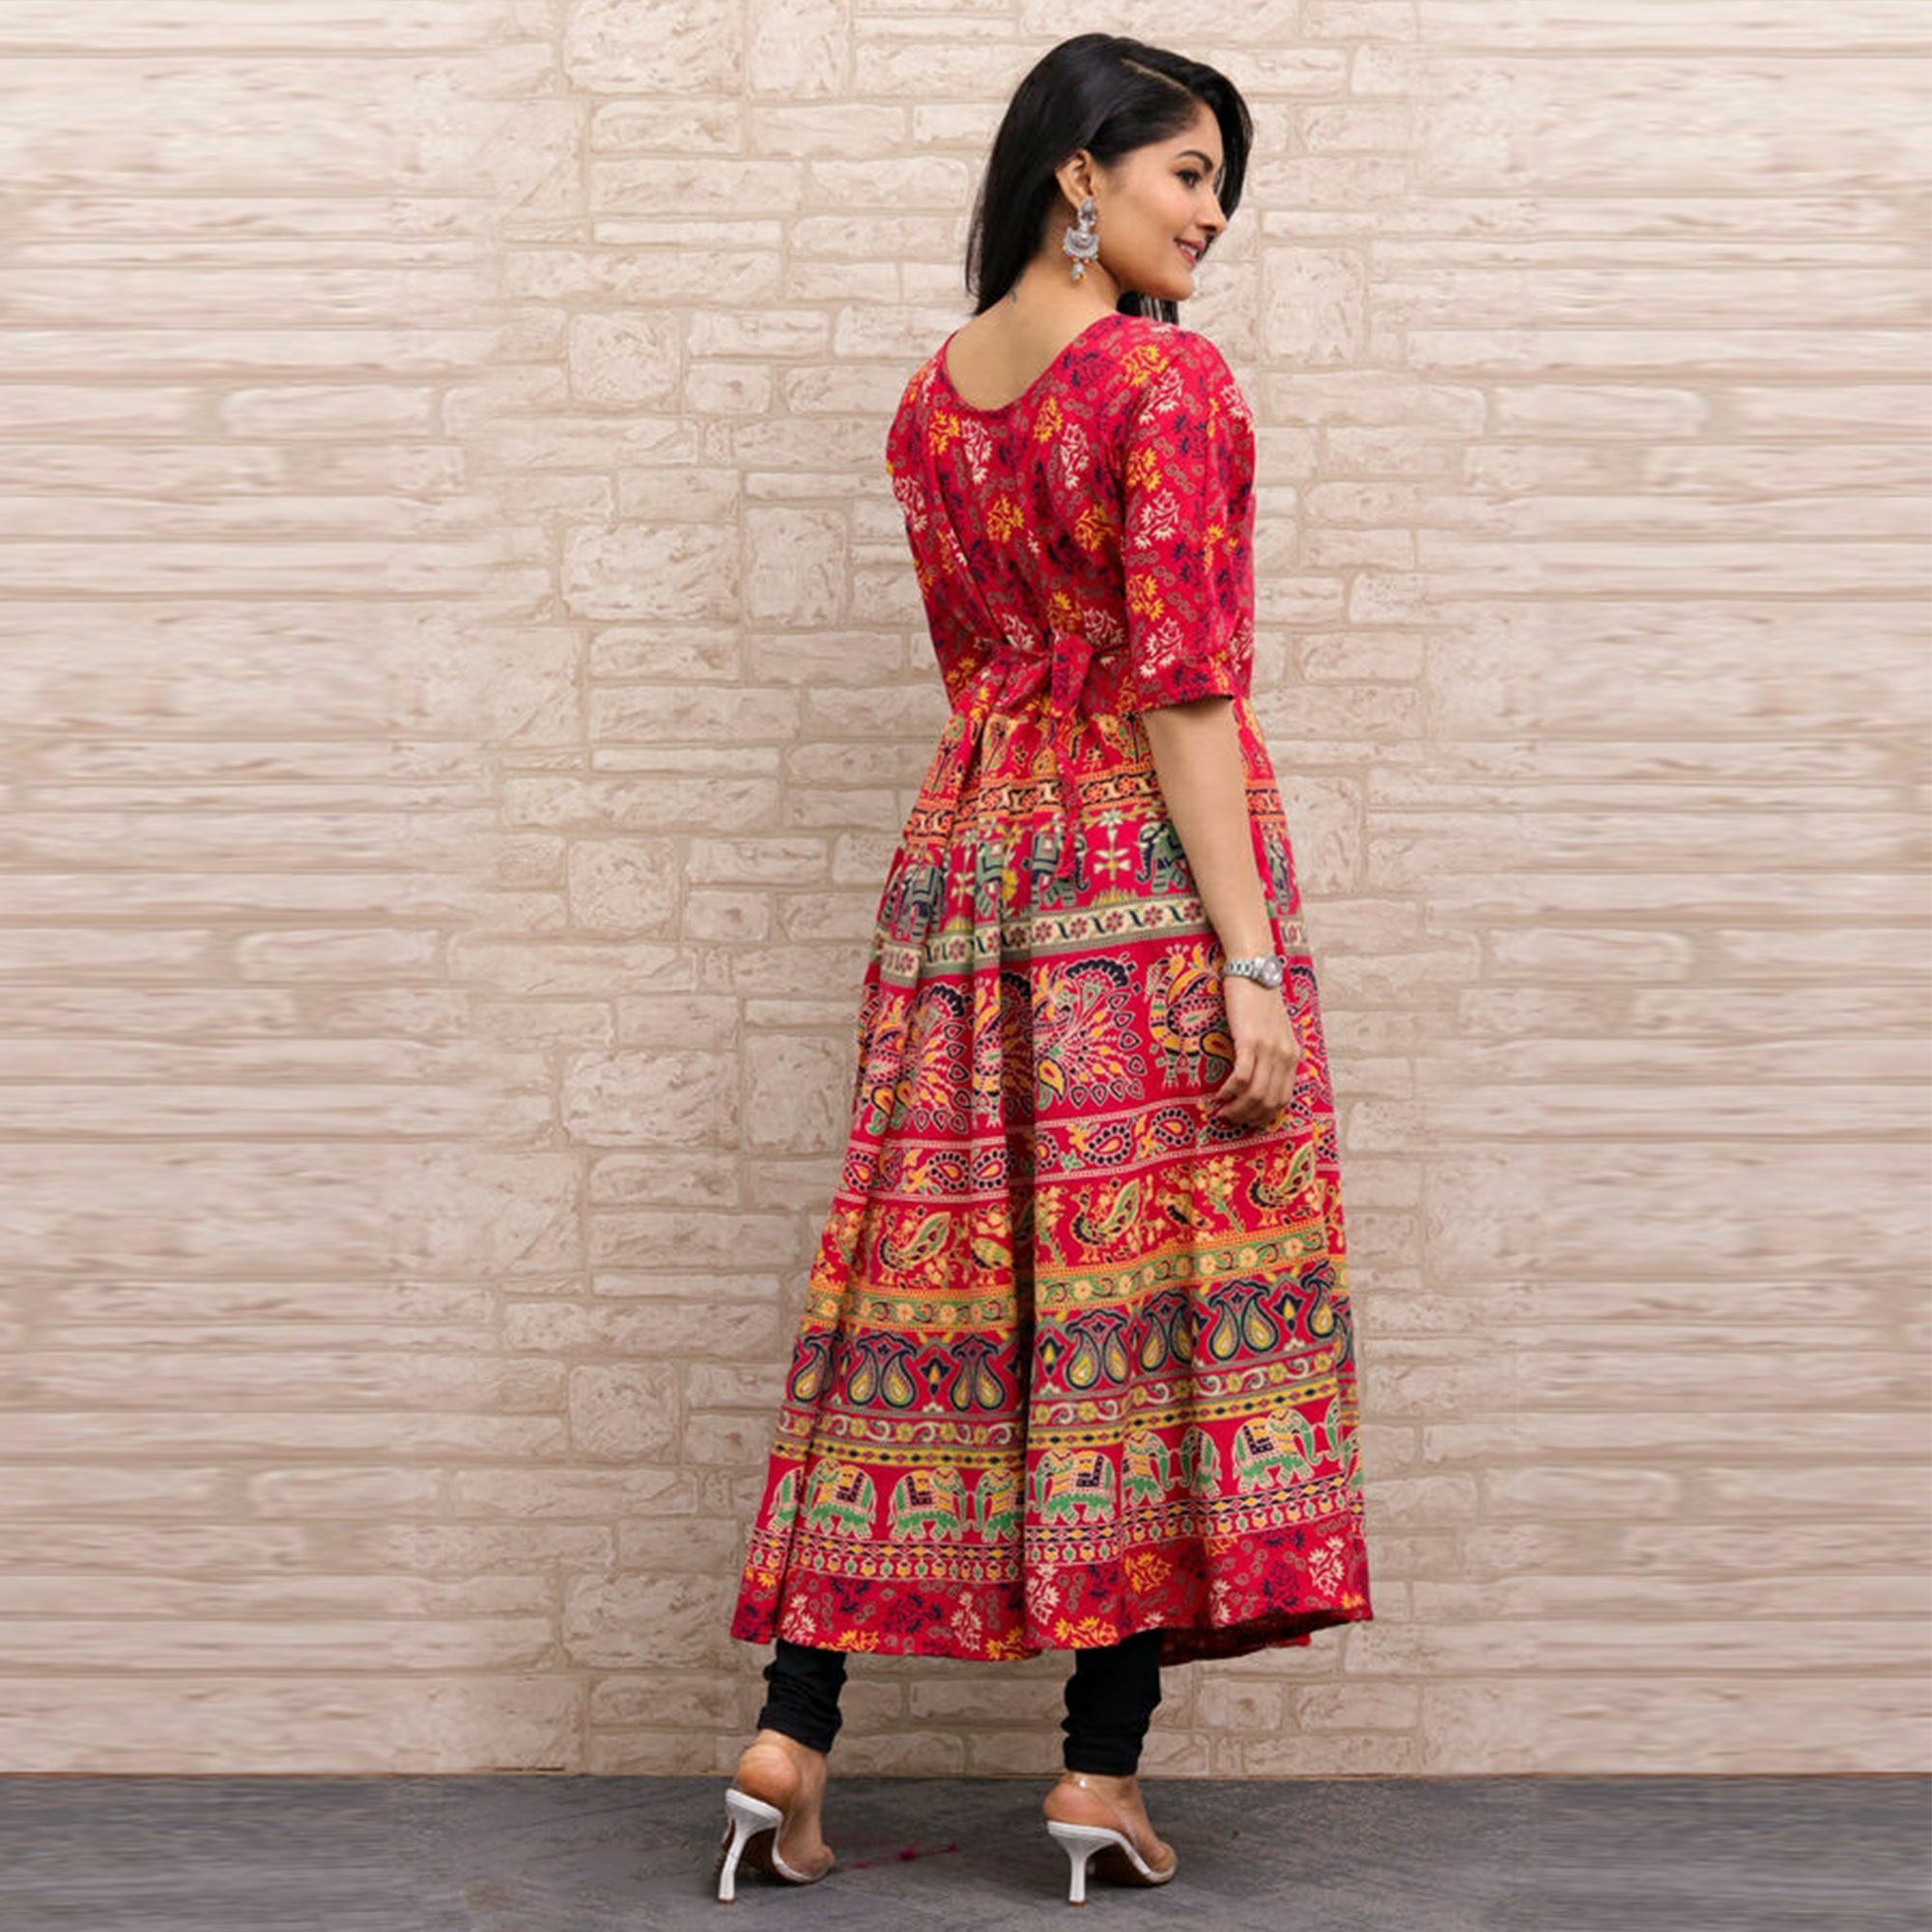 Pooja Fashion - Red Colored Casual Wear Printed Cotton Kurti